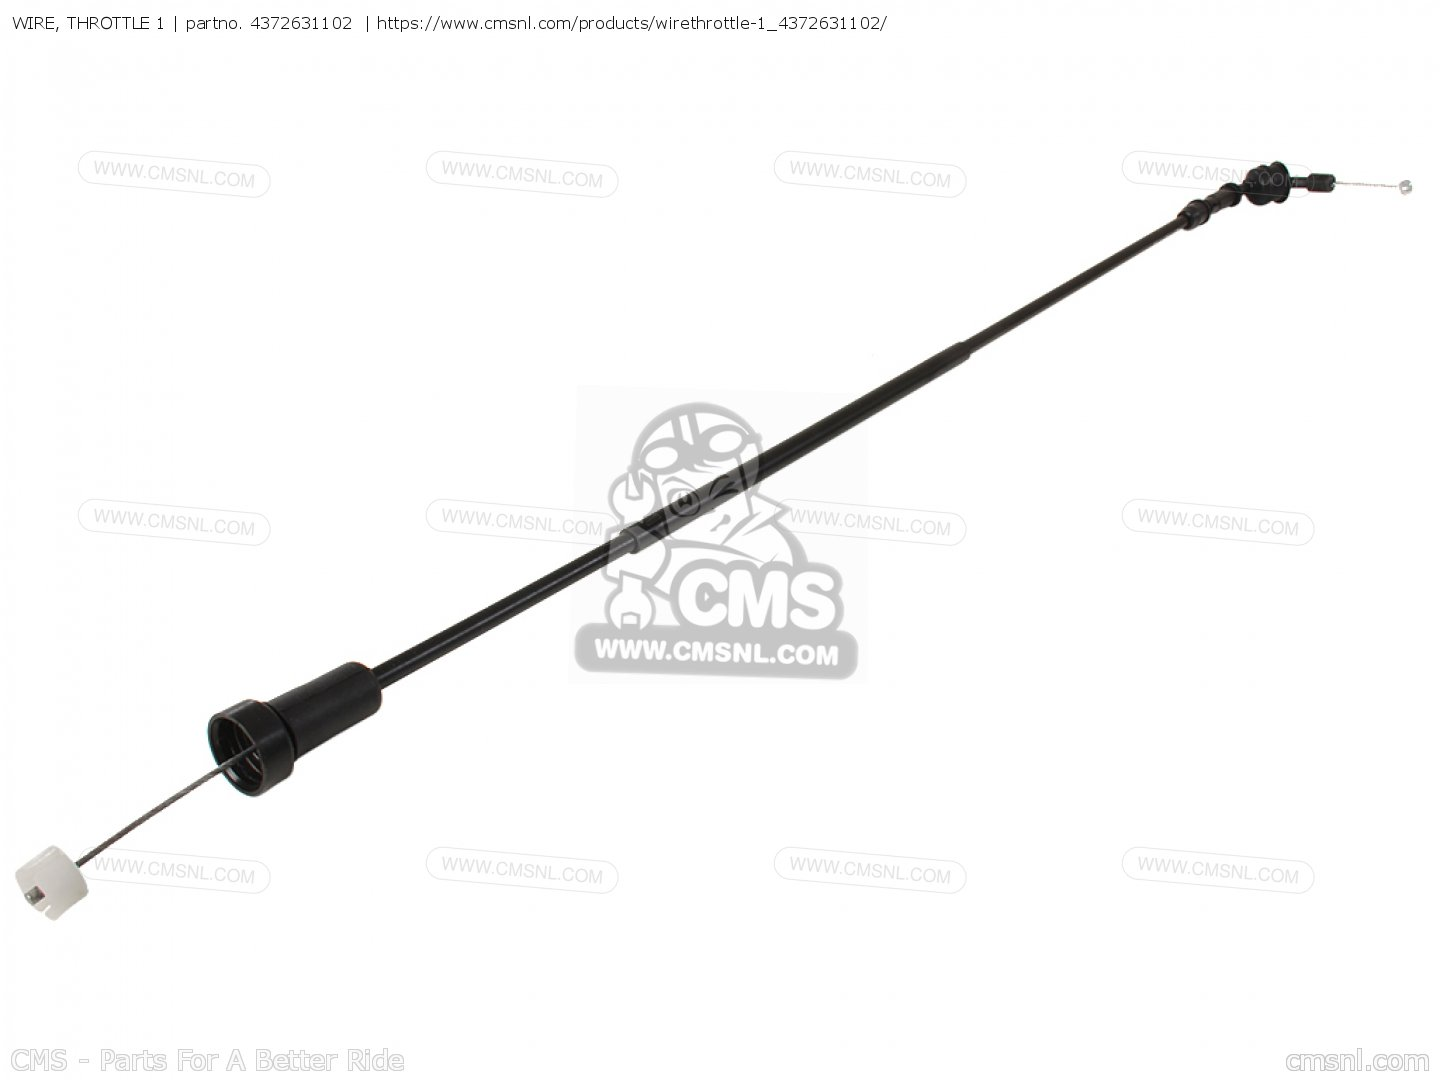 Wire Throttle 1 For Dt400 Usa